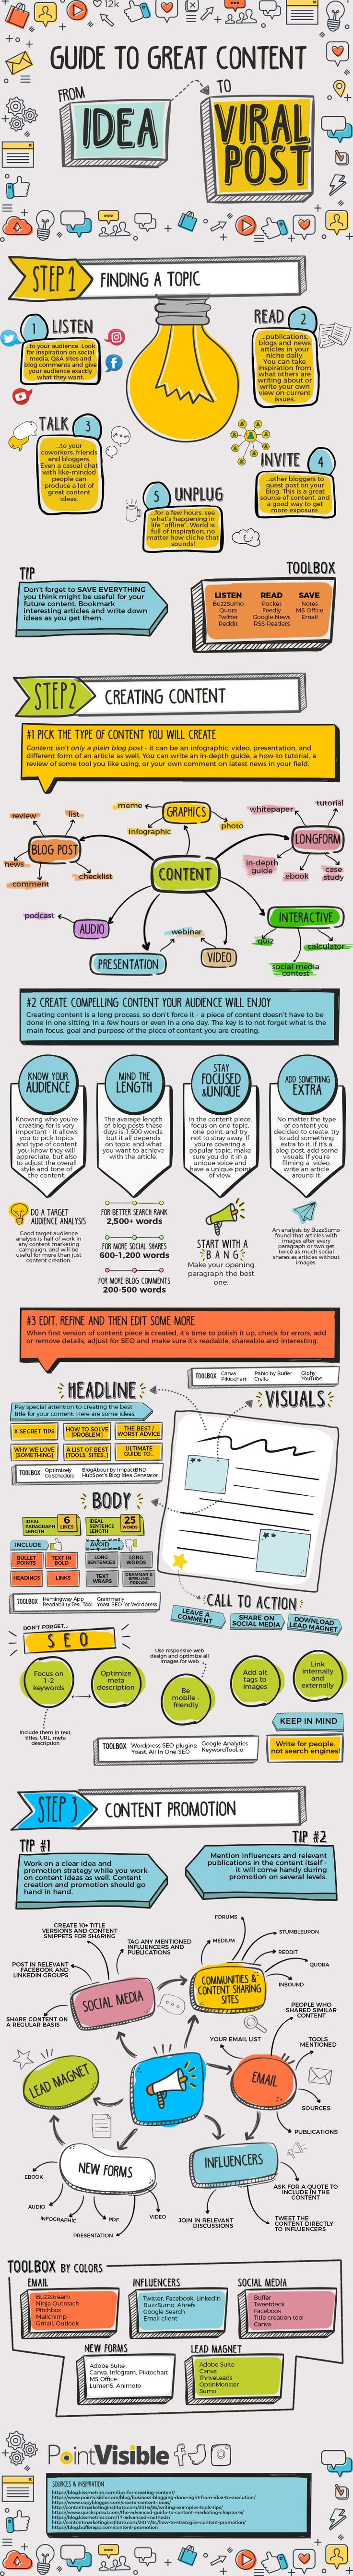 Advanced Blogging Tips: 3 Steps to Create Viral Posts [Infographic]